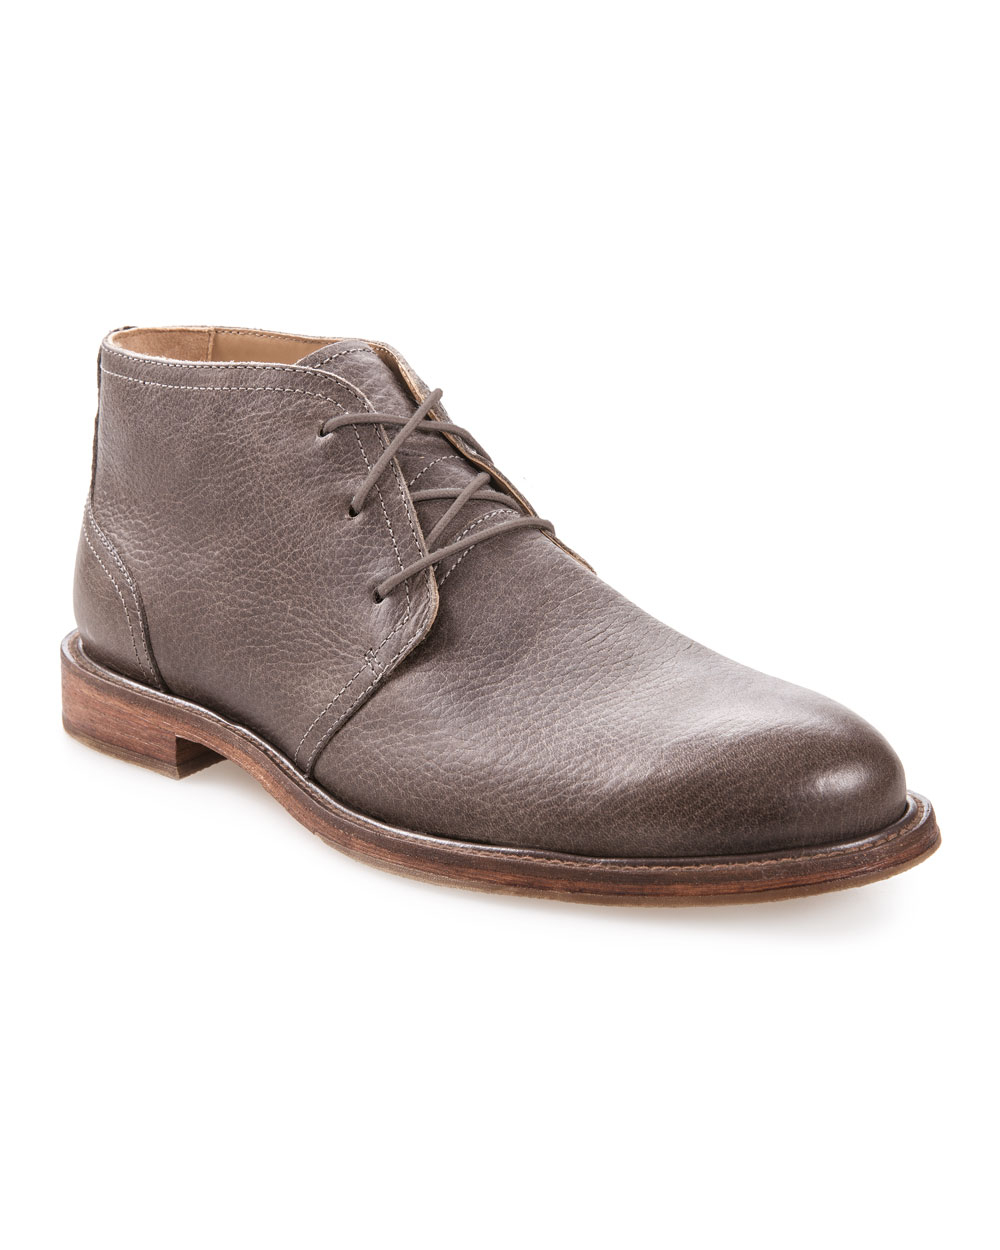 J Shoes Monarch Plus Leather Chukka (cow leather paloma)